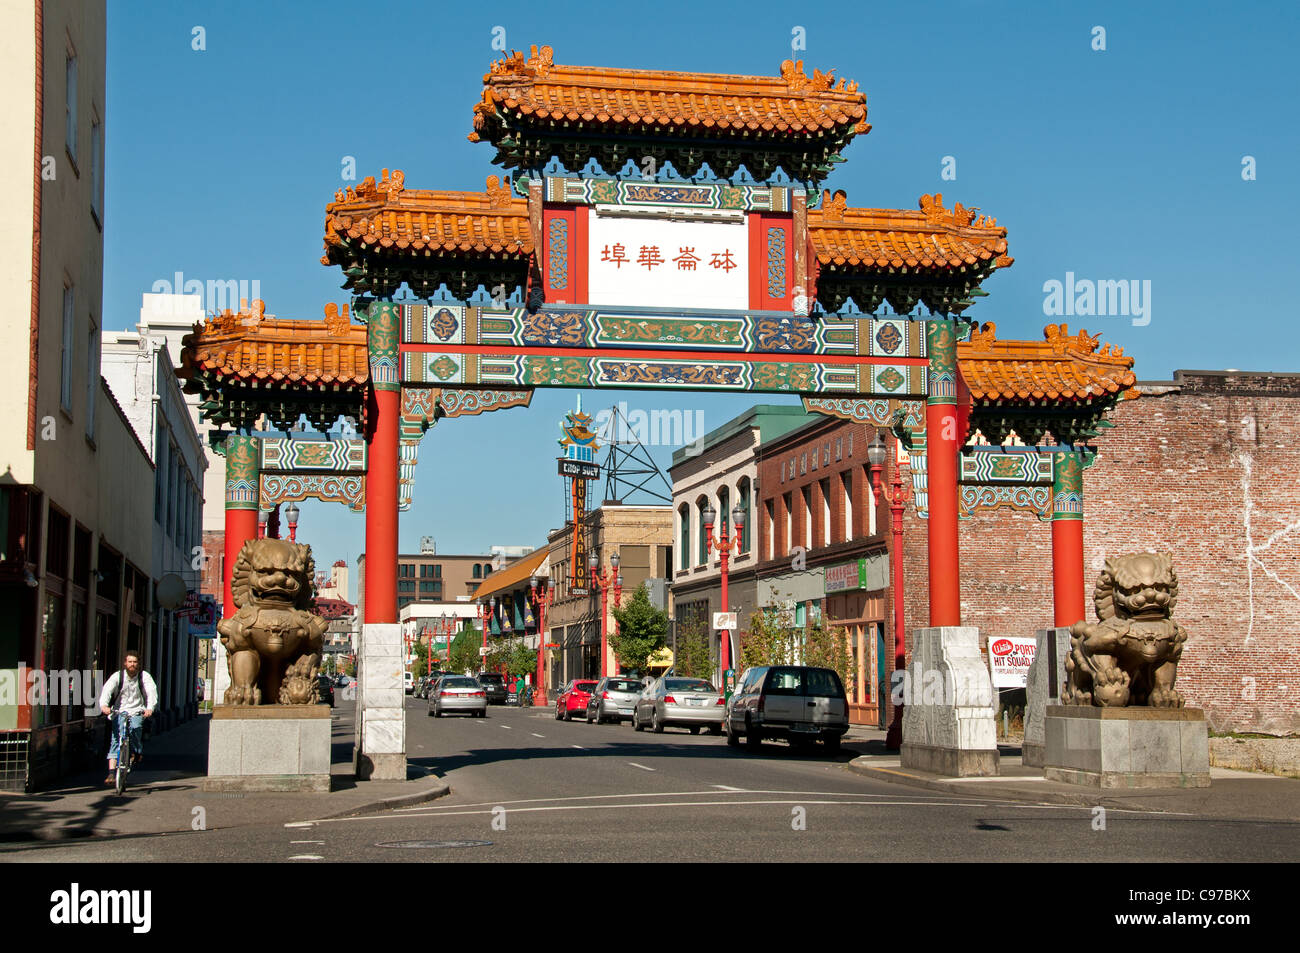 Chinatown oregon